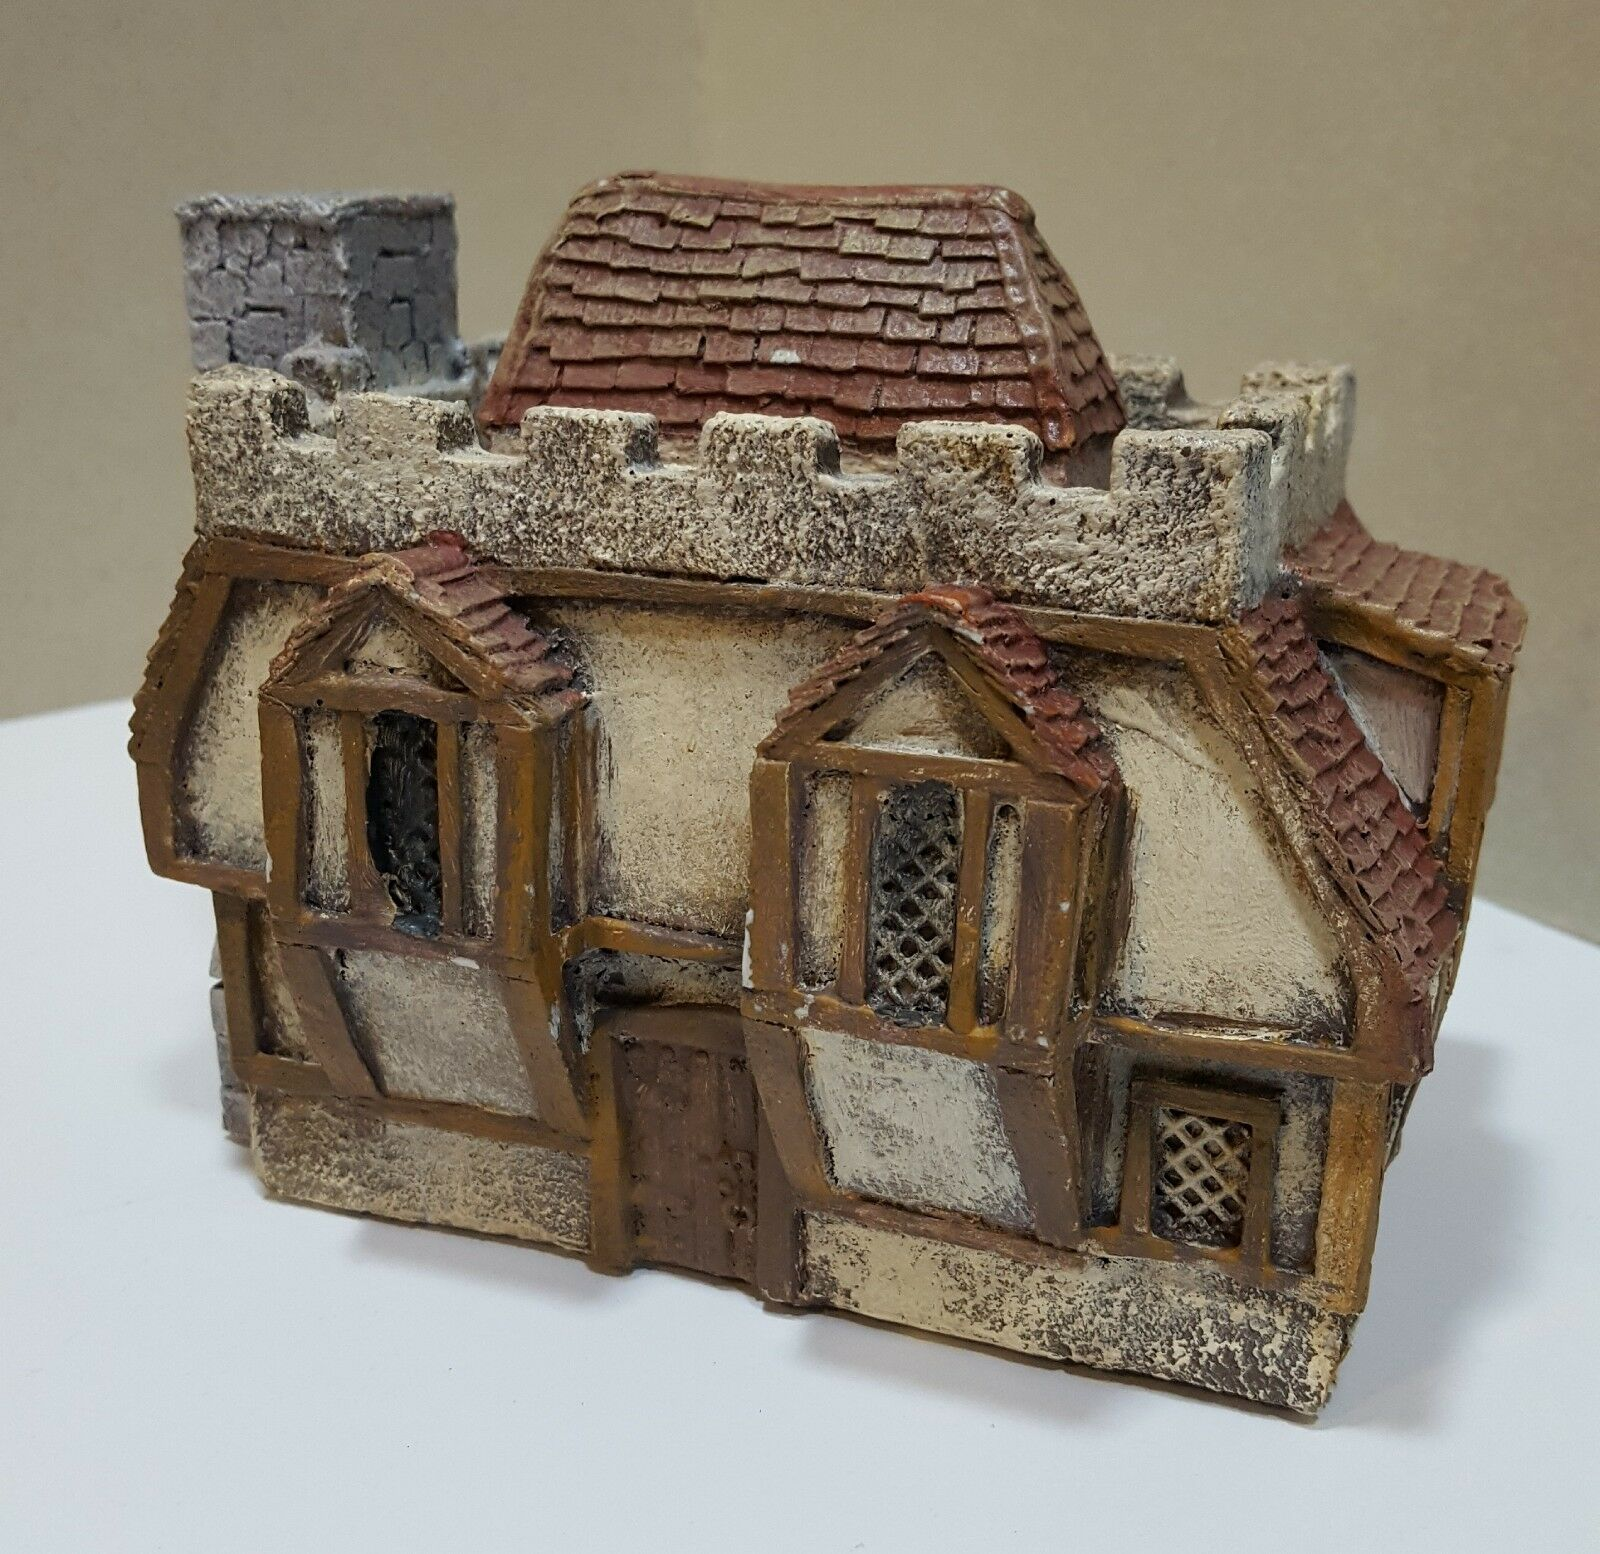 15MM TO 28MM - FANTASY HOUSE 4 - WARGAMES TERRAIN - USED